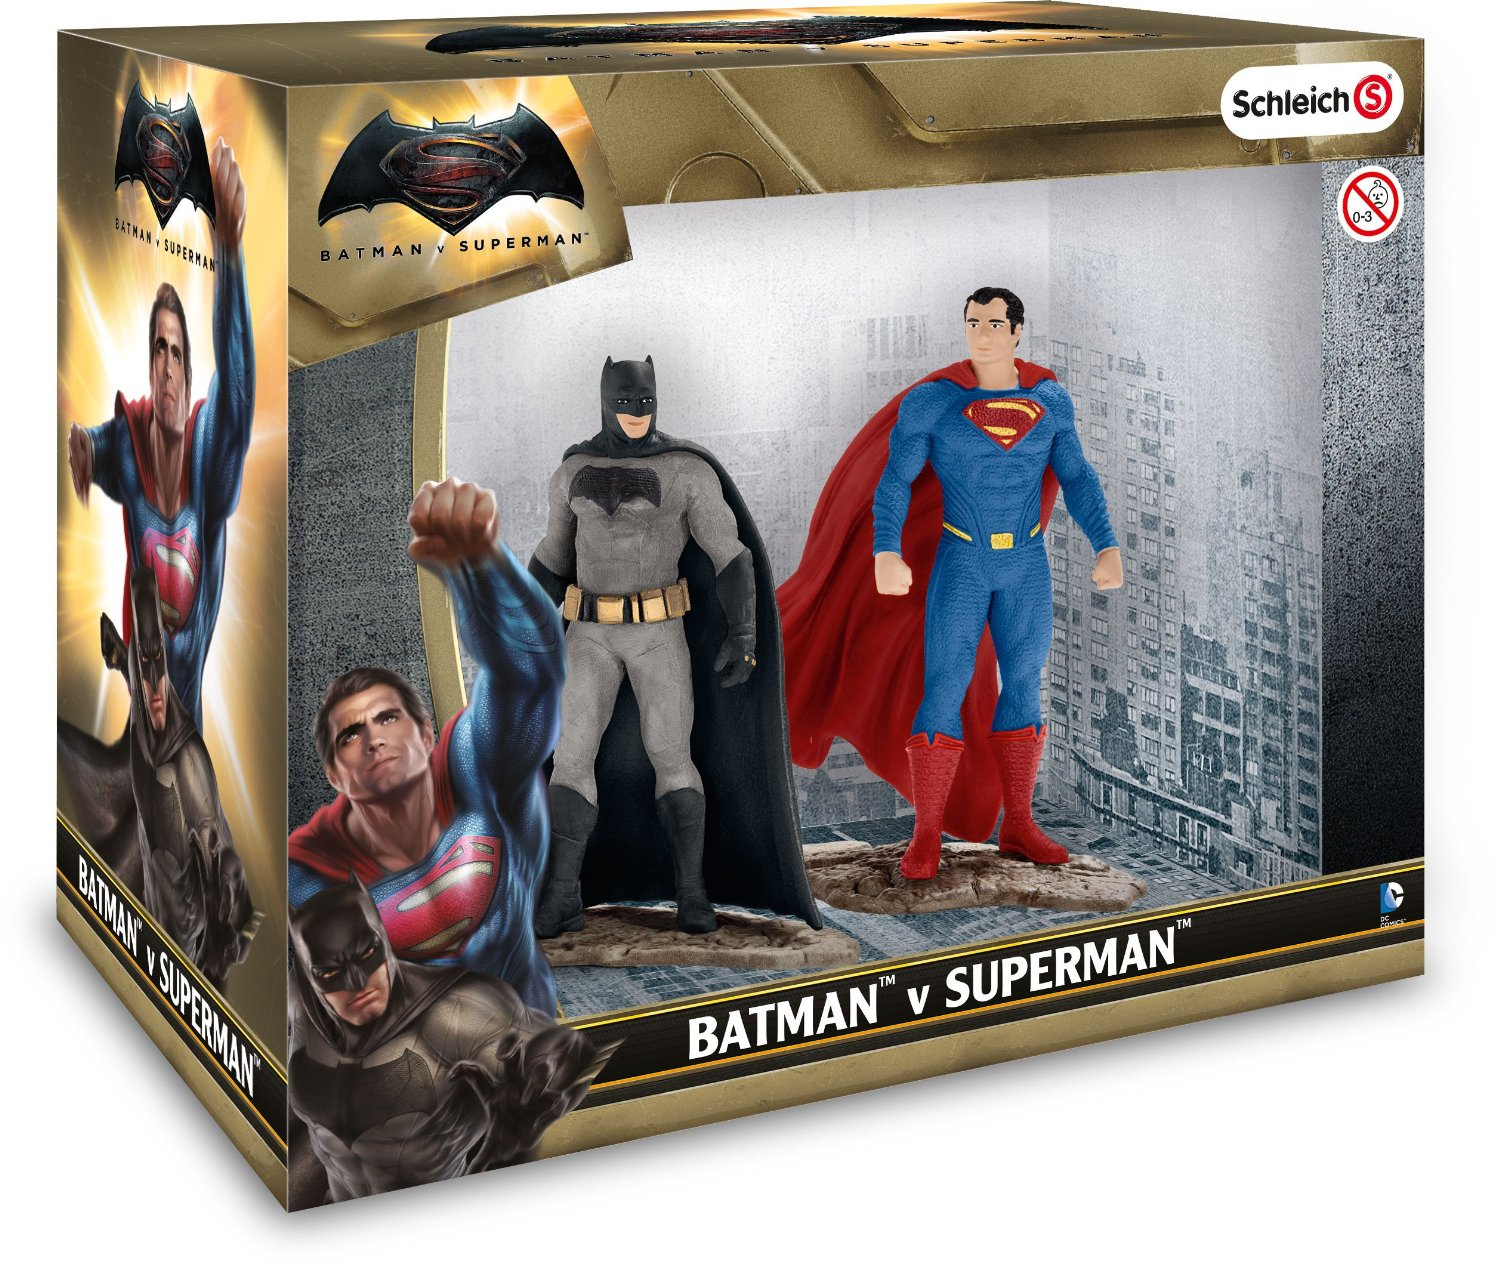 Schleich 22529 Batman vs Superman Scenery Pack